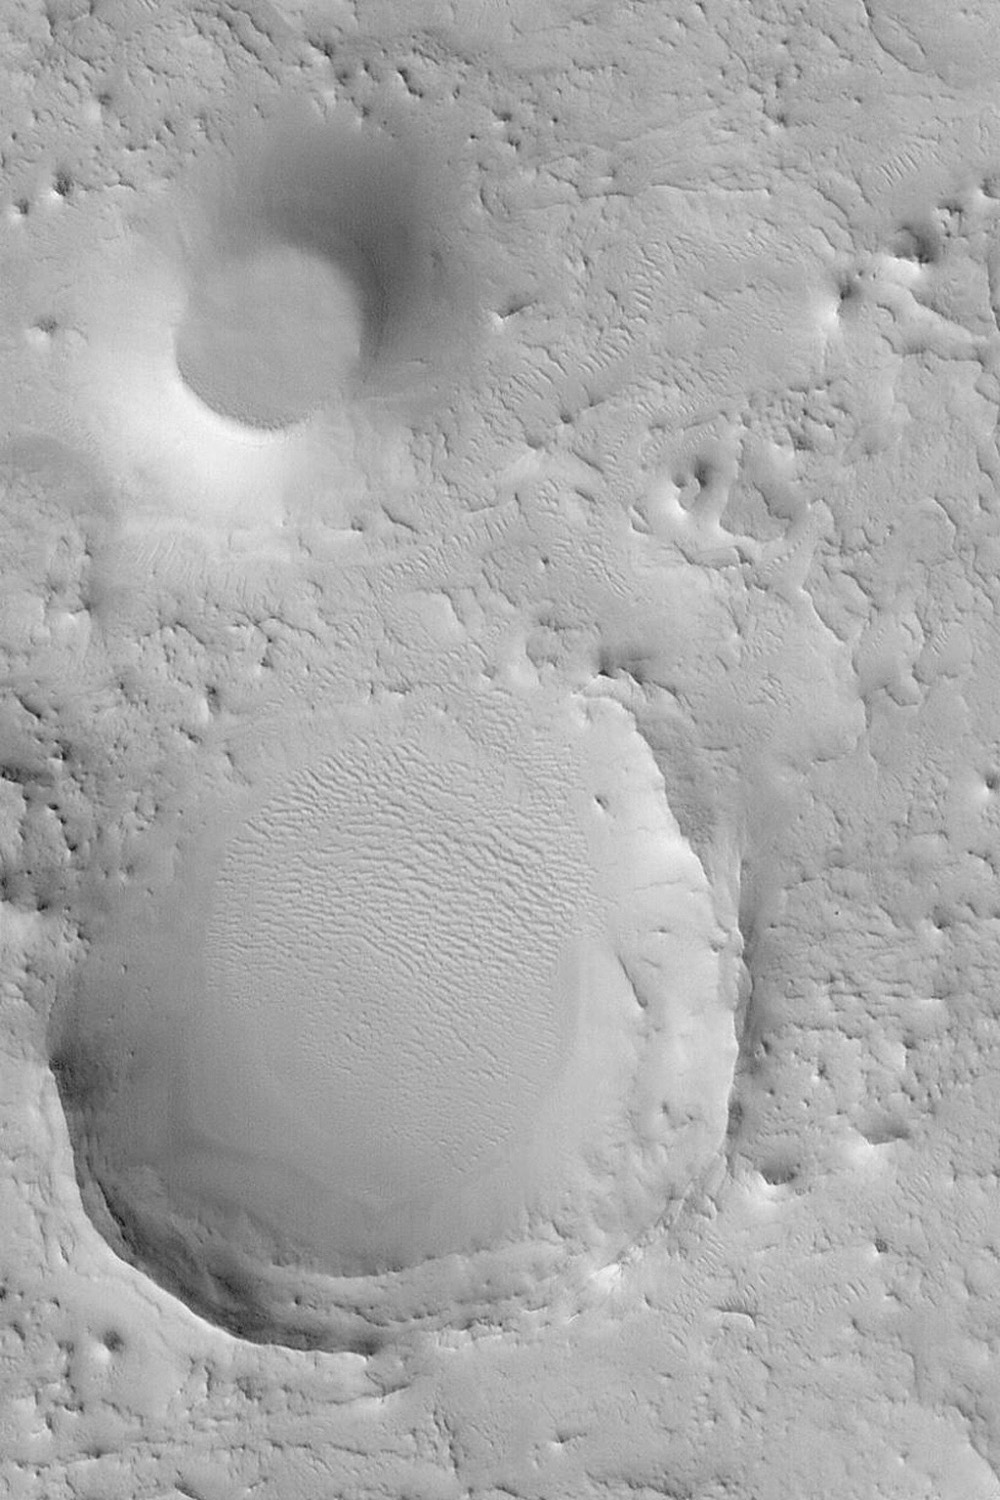 NASA's Mars Global Surveyor shows the remains of two former meteor impact craters in northeastern Arabia Terra on Mars.